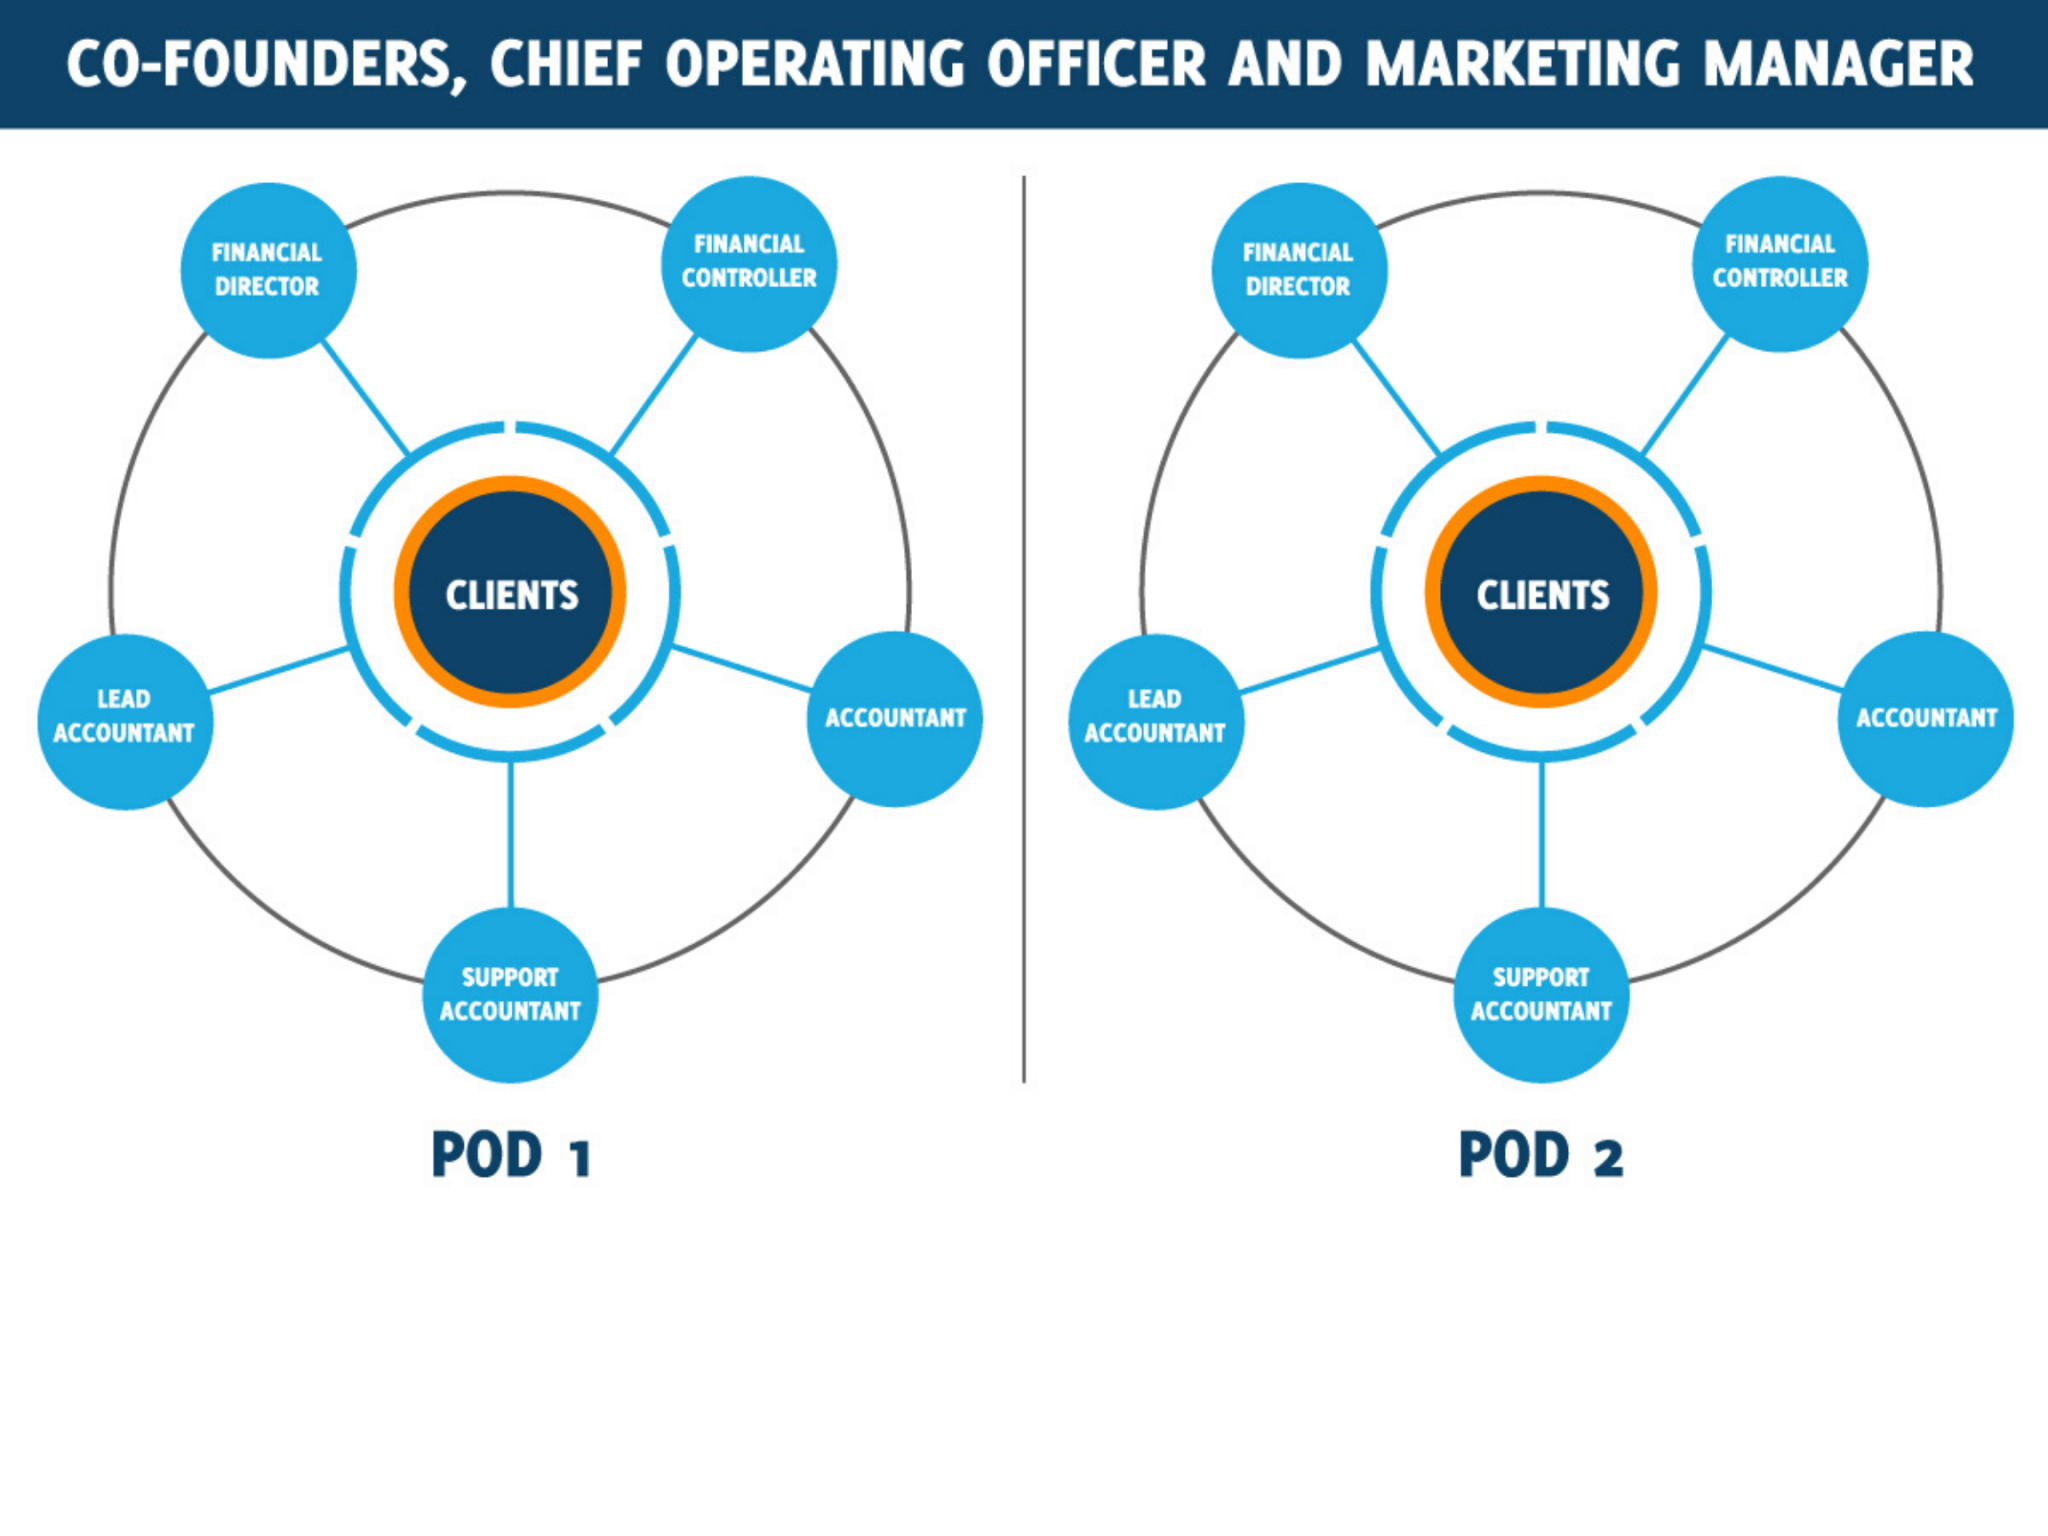 Benefits of a Pod team structure